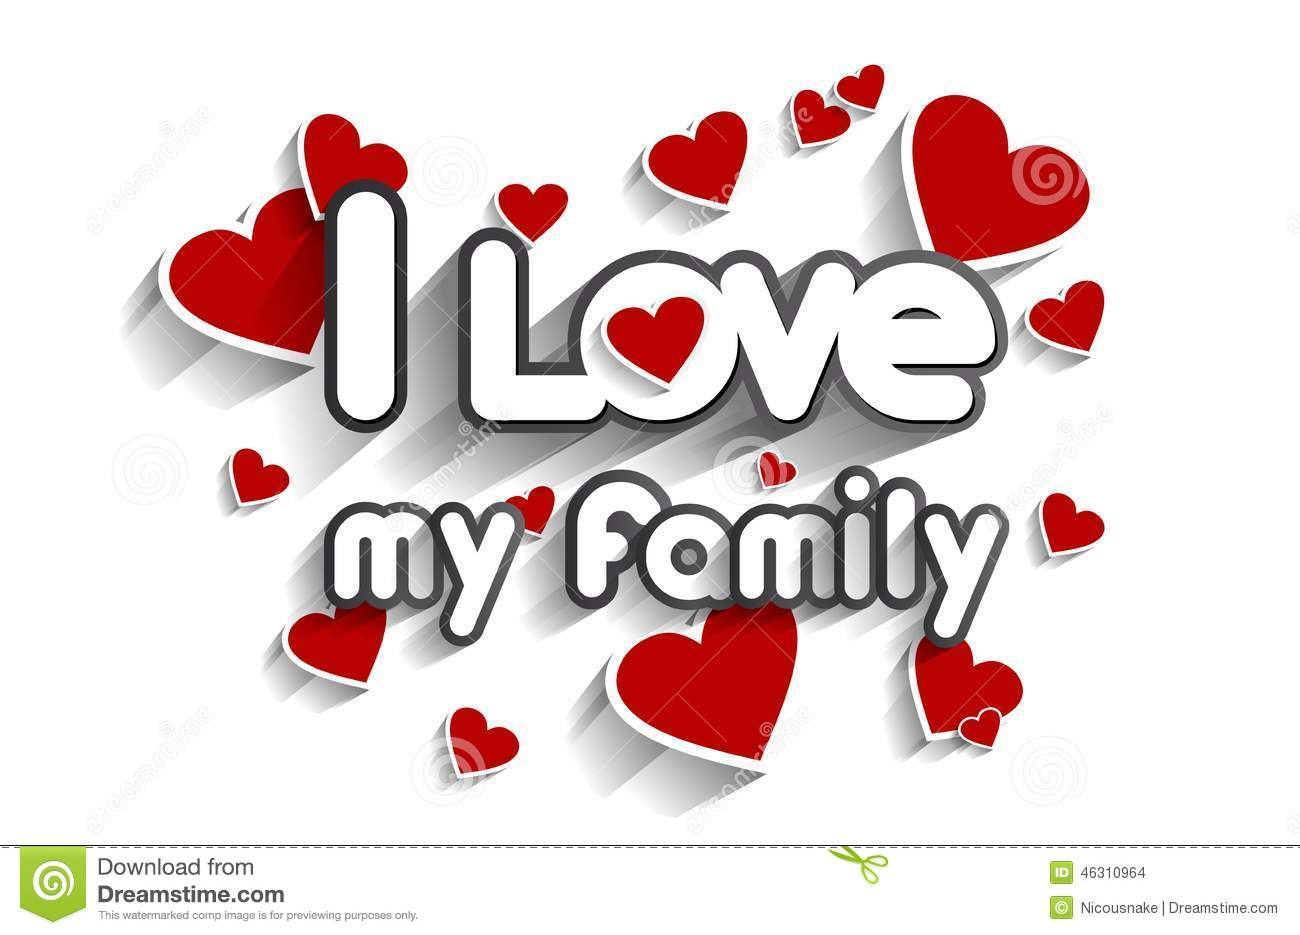 Gm My Love Wallpaper : I Love My Family Wallpaper - WallpaperSafari